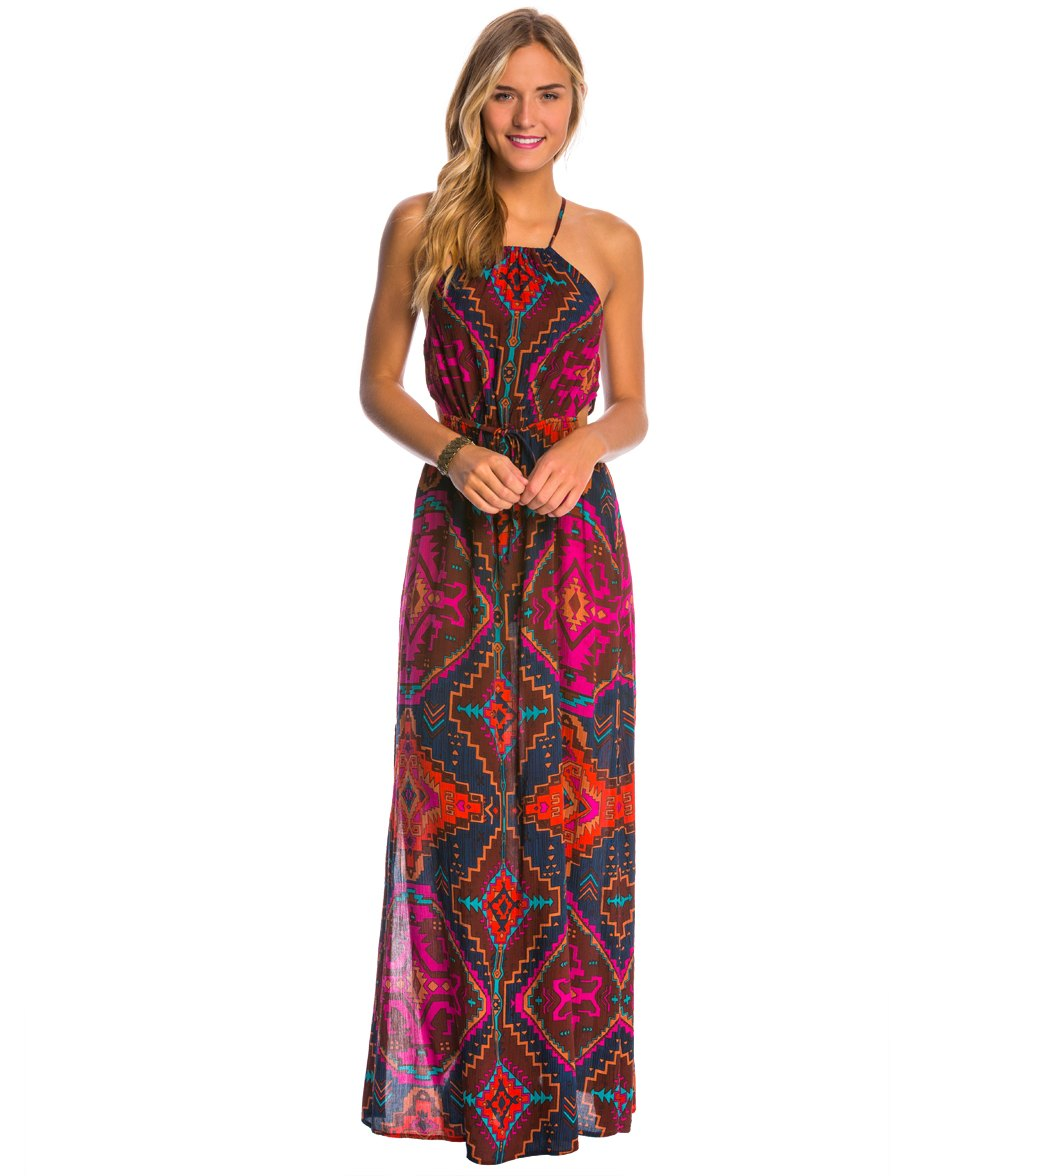 Billabong Native Sands Maxi Dress at SwimOutlet.com - Free Shipping